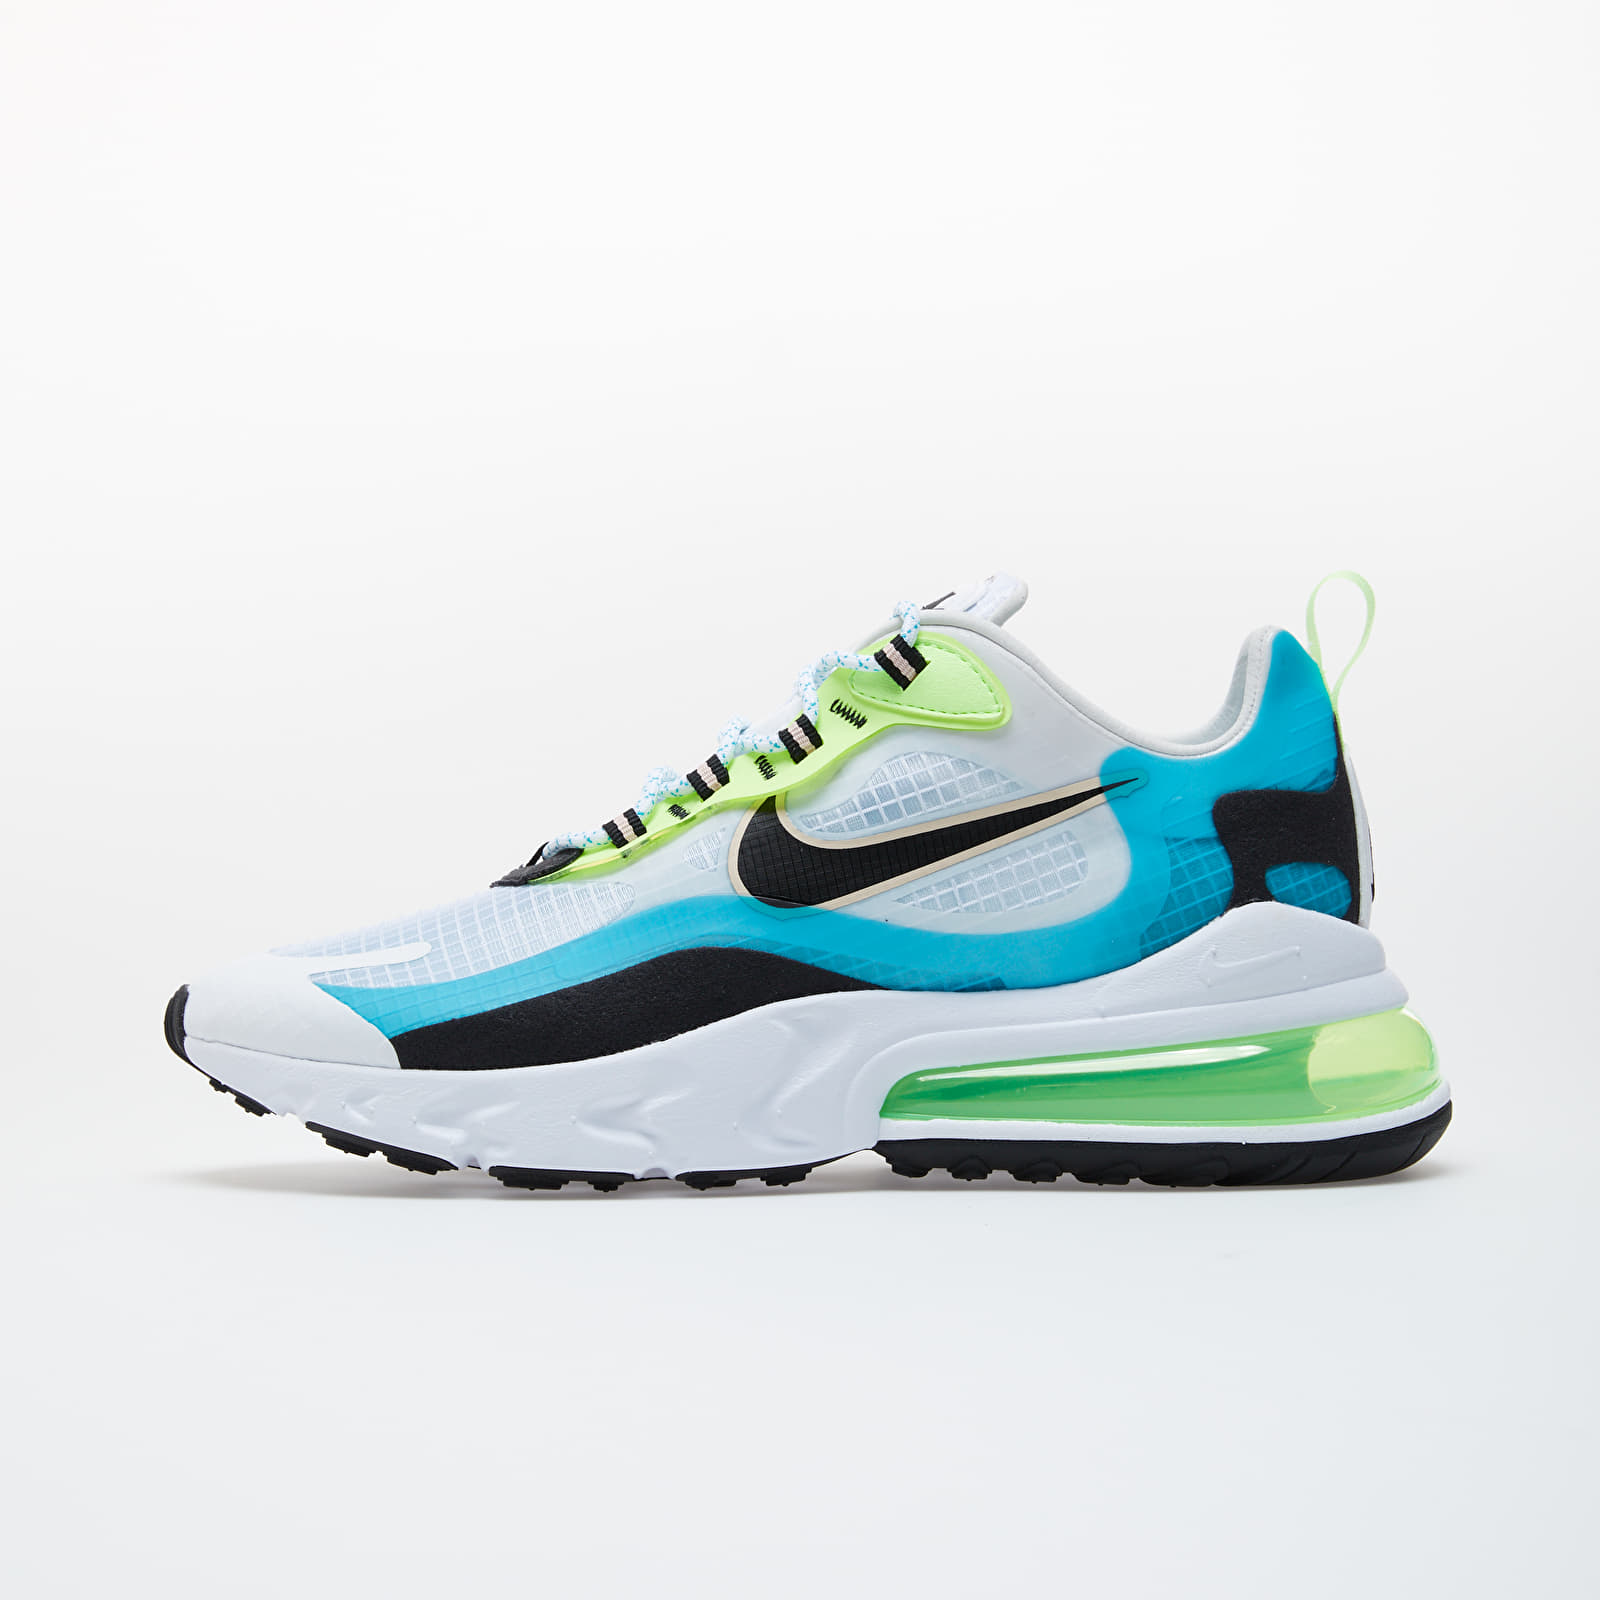 Muške tenisice Nike Air Max 270 React SE Oracle Aqua/ Black-Ghost Green